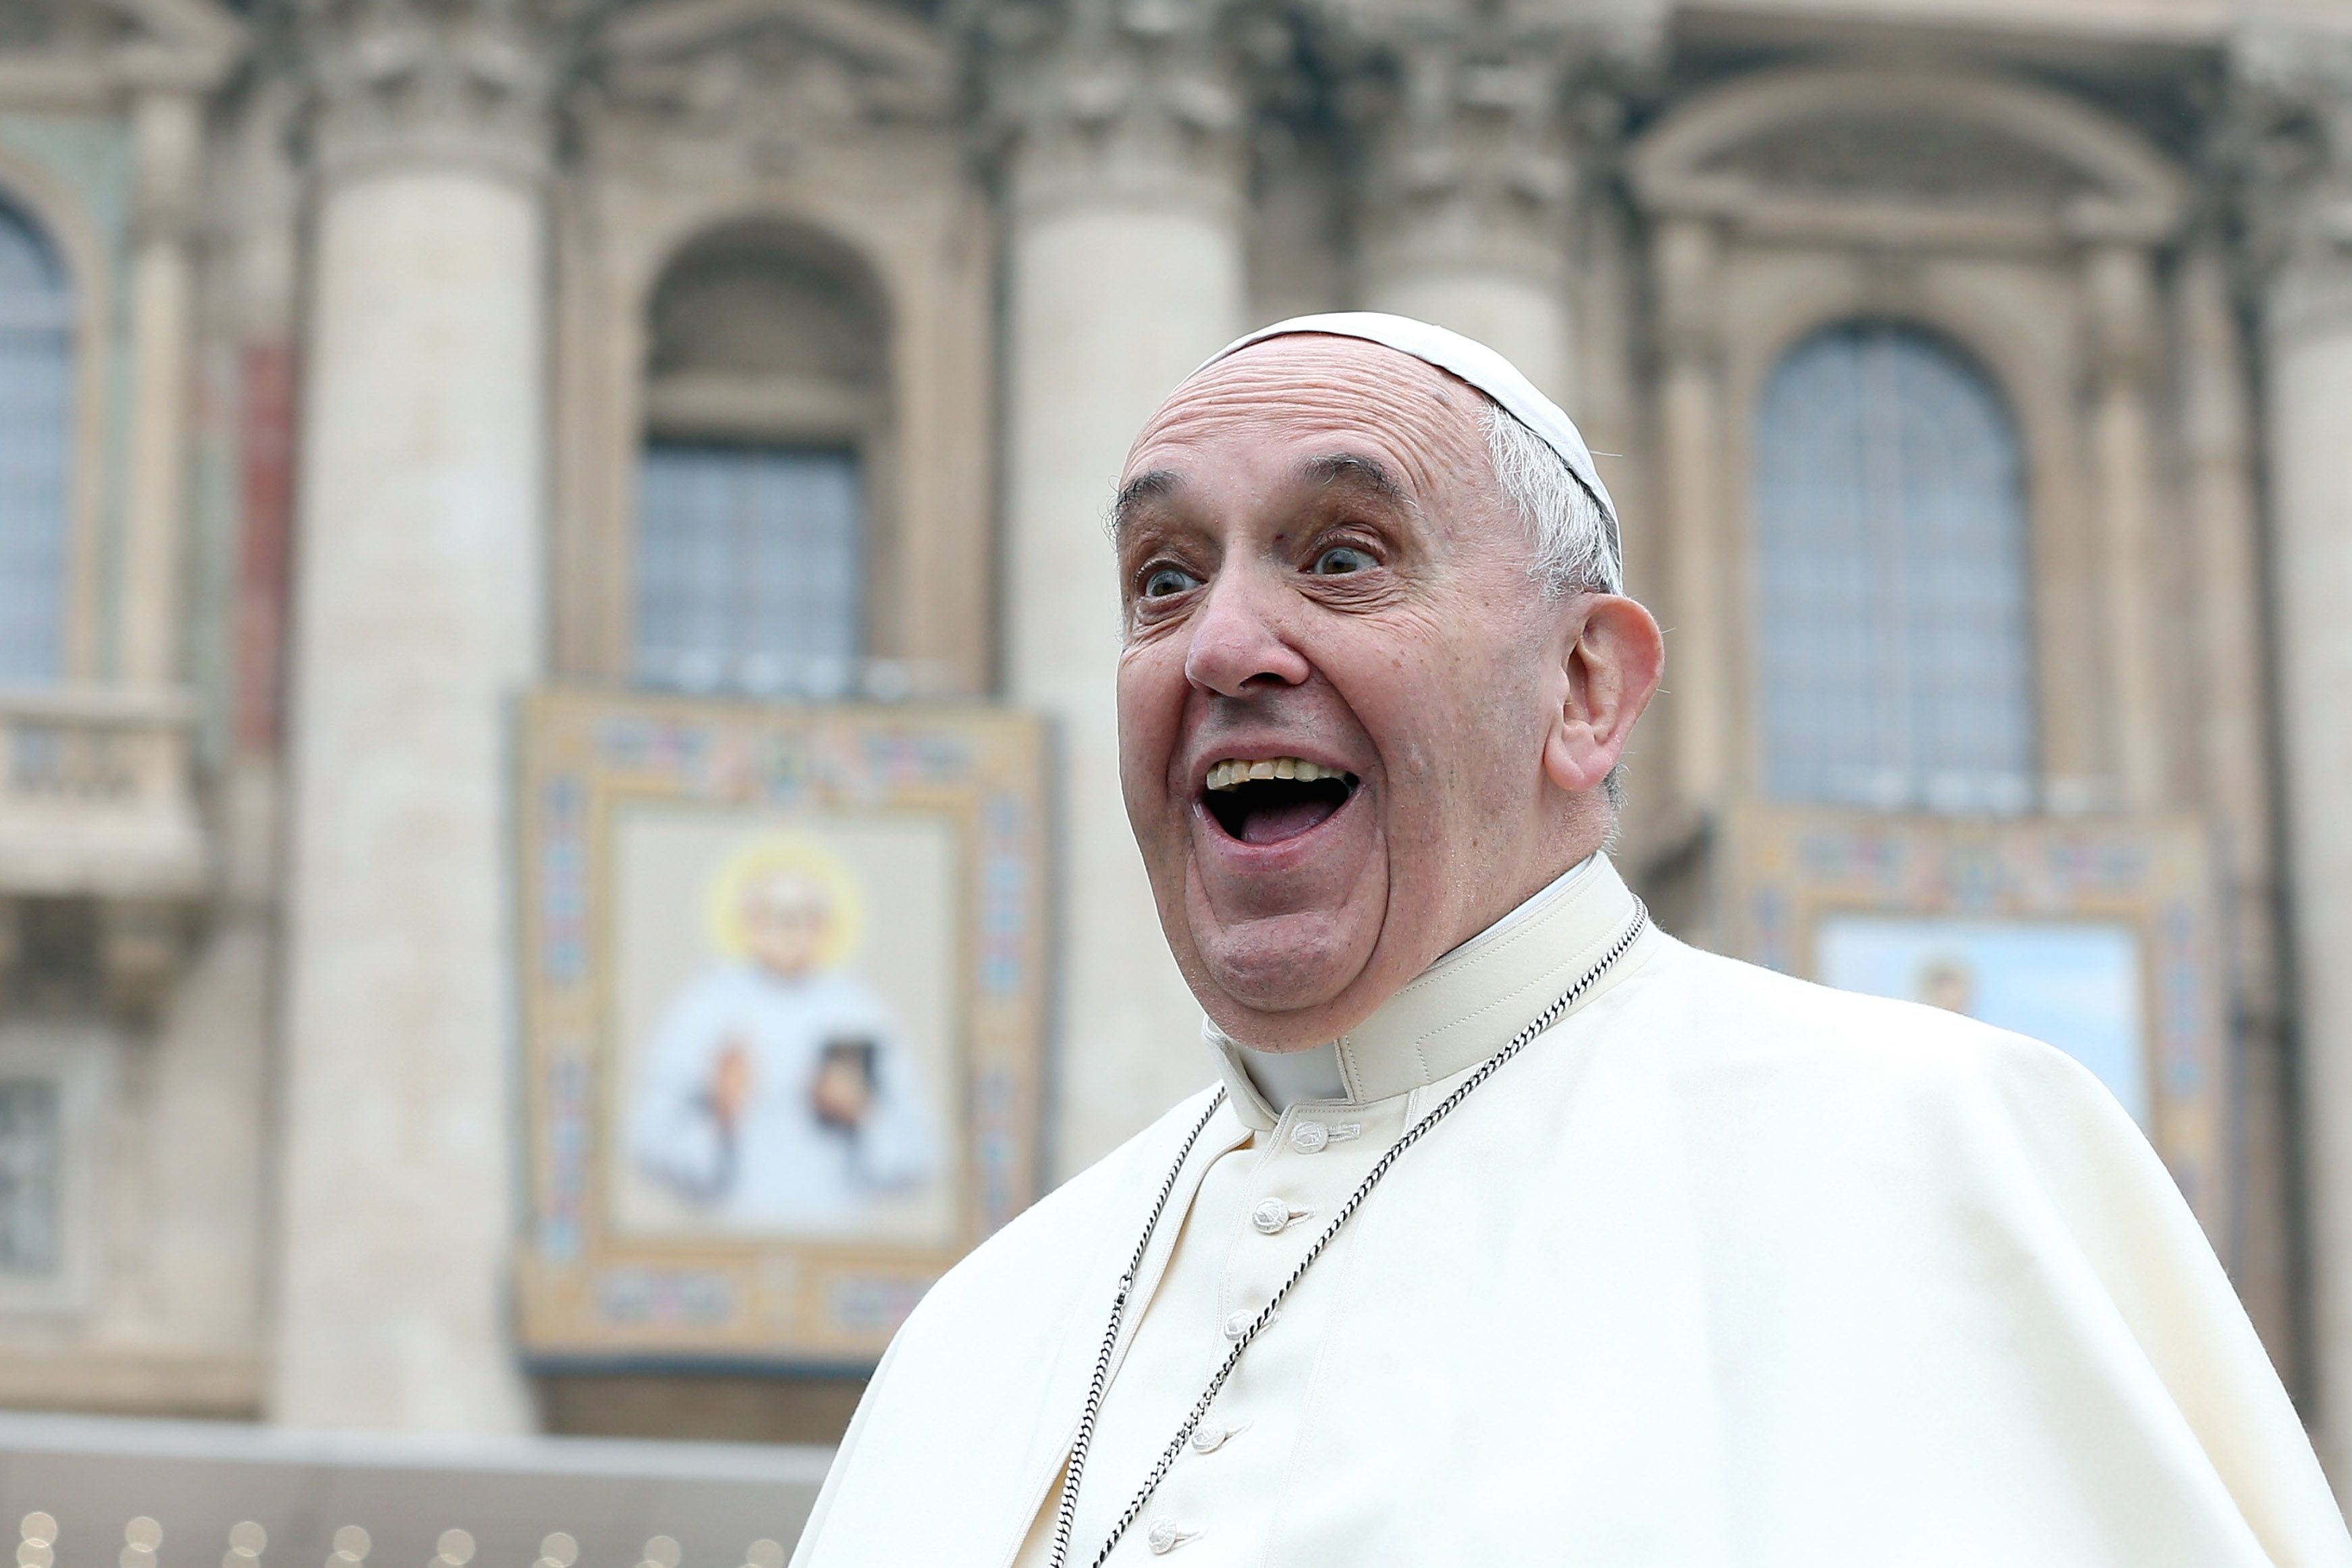 The American Right S New Target Pope Francis Pope Francis Pictures Of The Week Pope